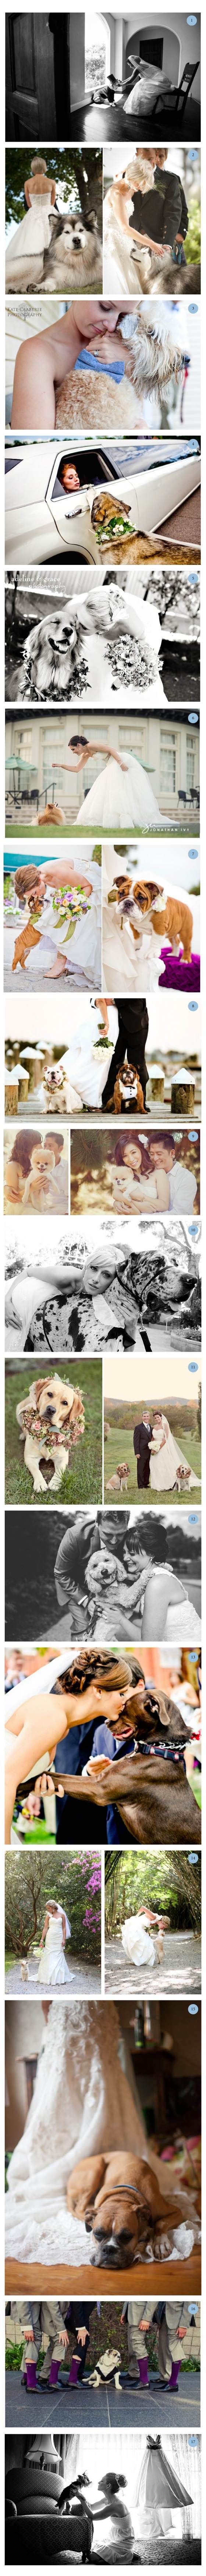 Having your puppies on your wedding day! I wish I could do this with my baby girl, but at least she's in a better place.: